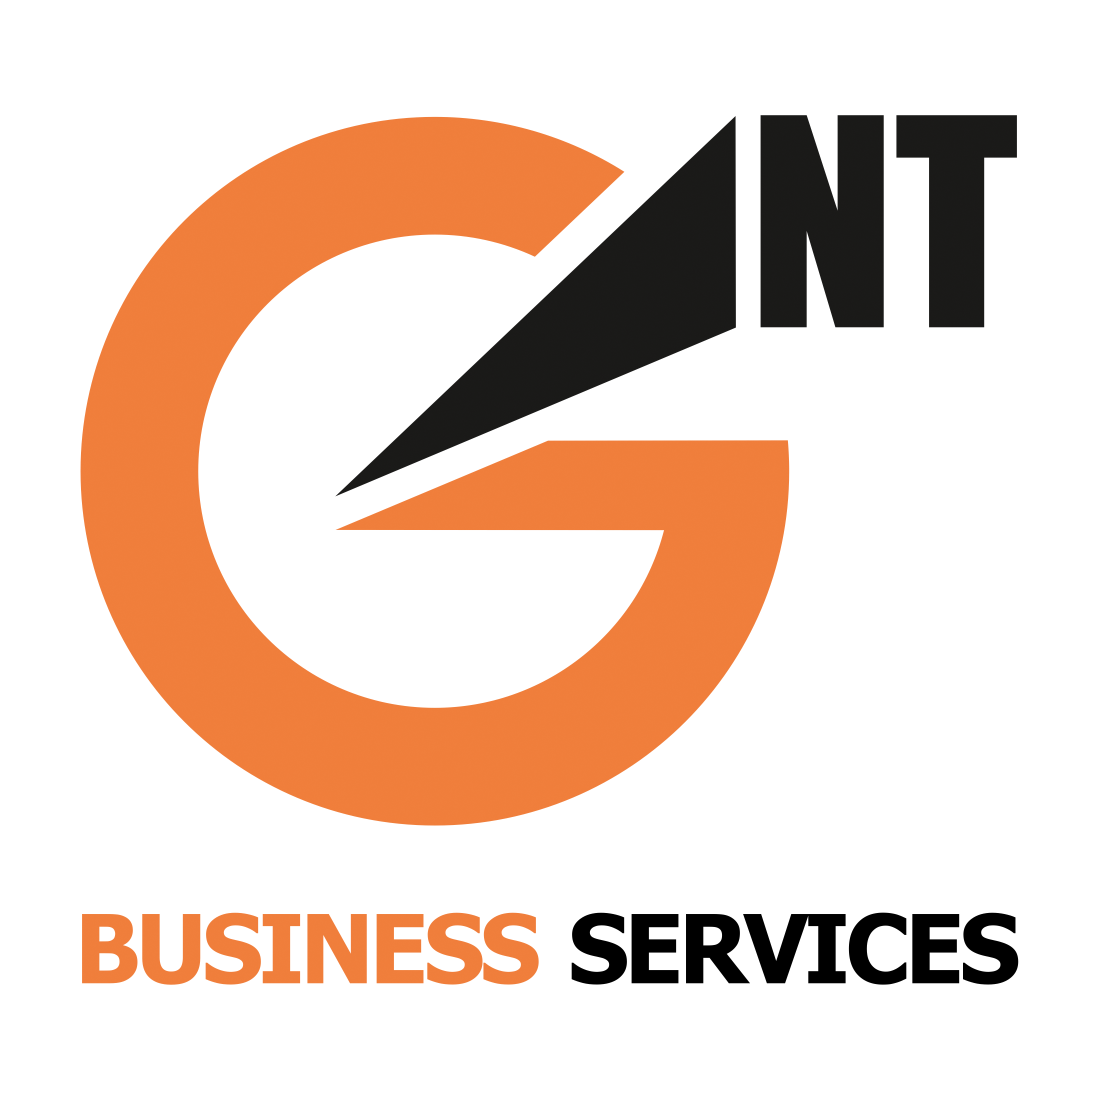 G.N.T. Business Services, s.r.o.